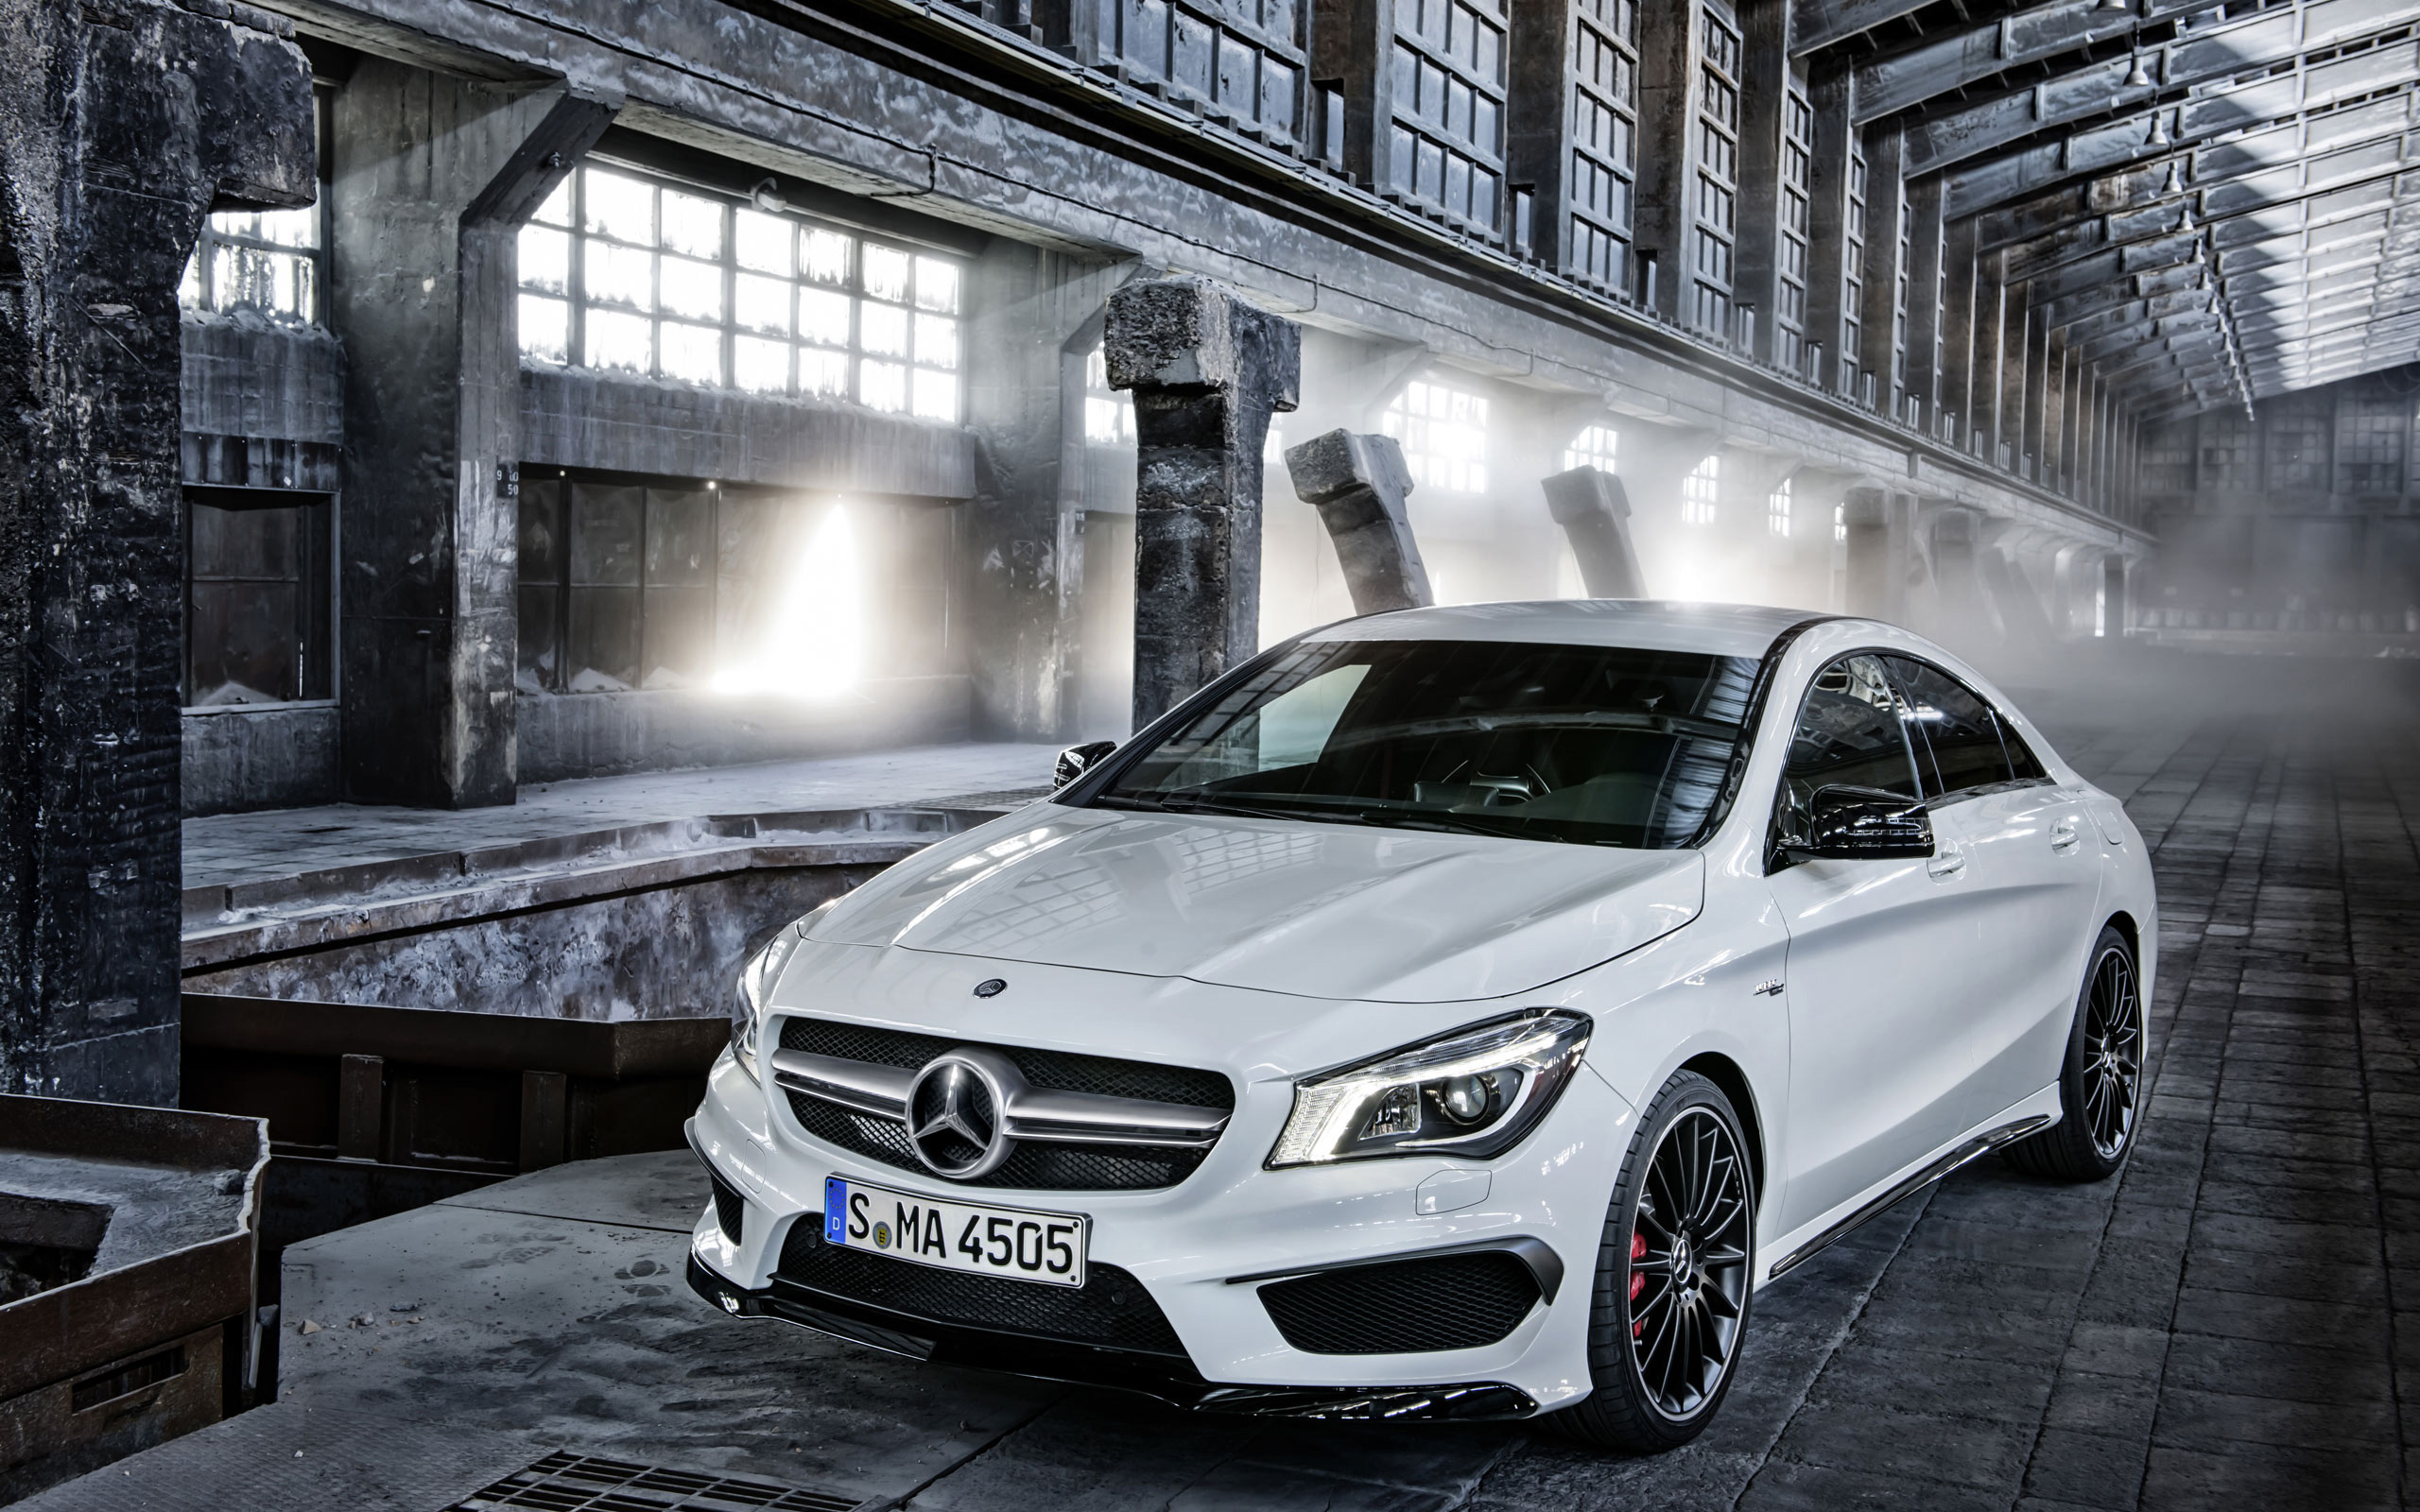 2014 mercedes benz cla45 amg wallpaper hd car wallpapers for Autos mercedes benz